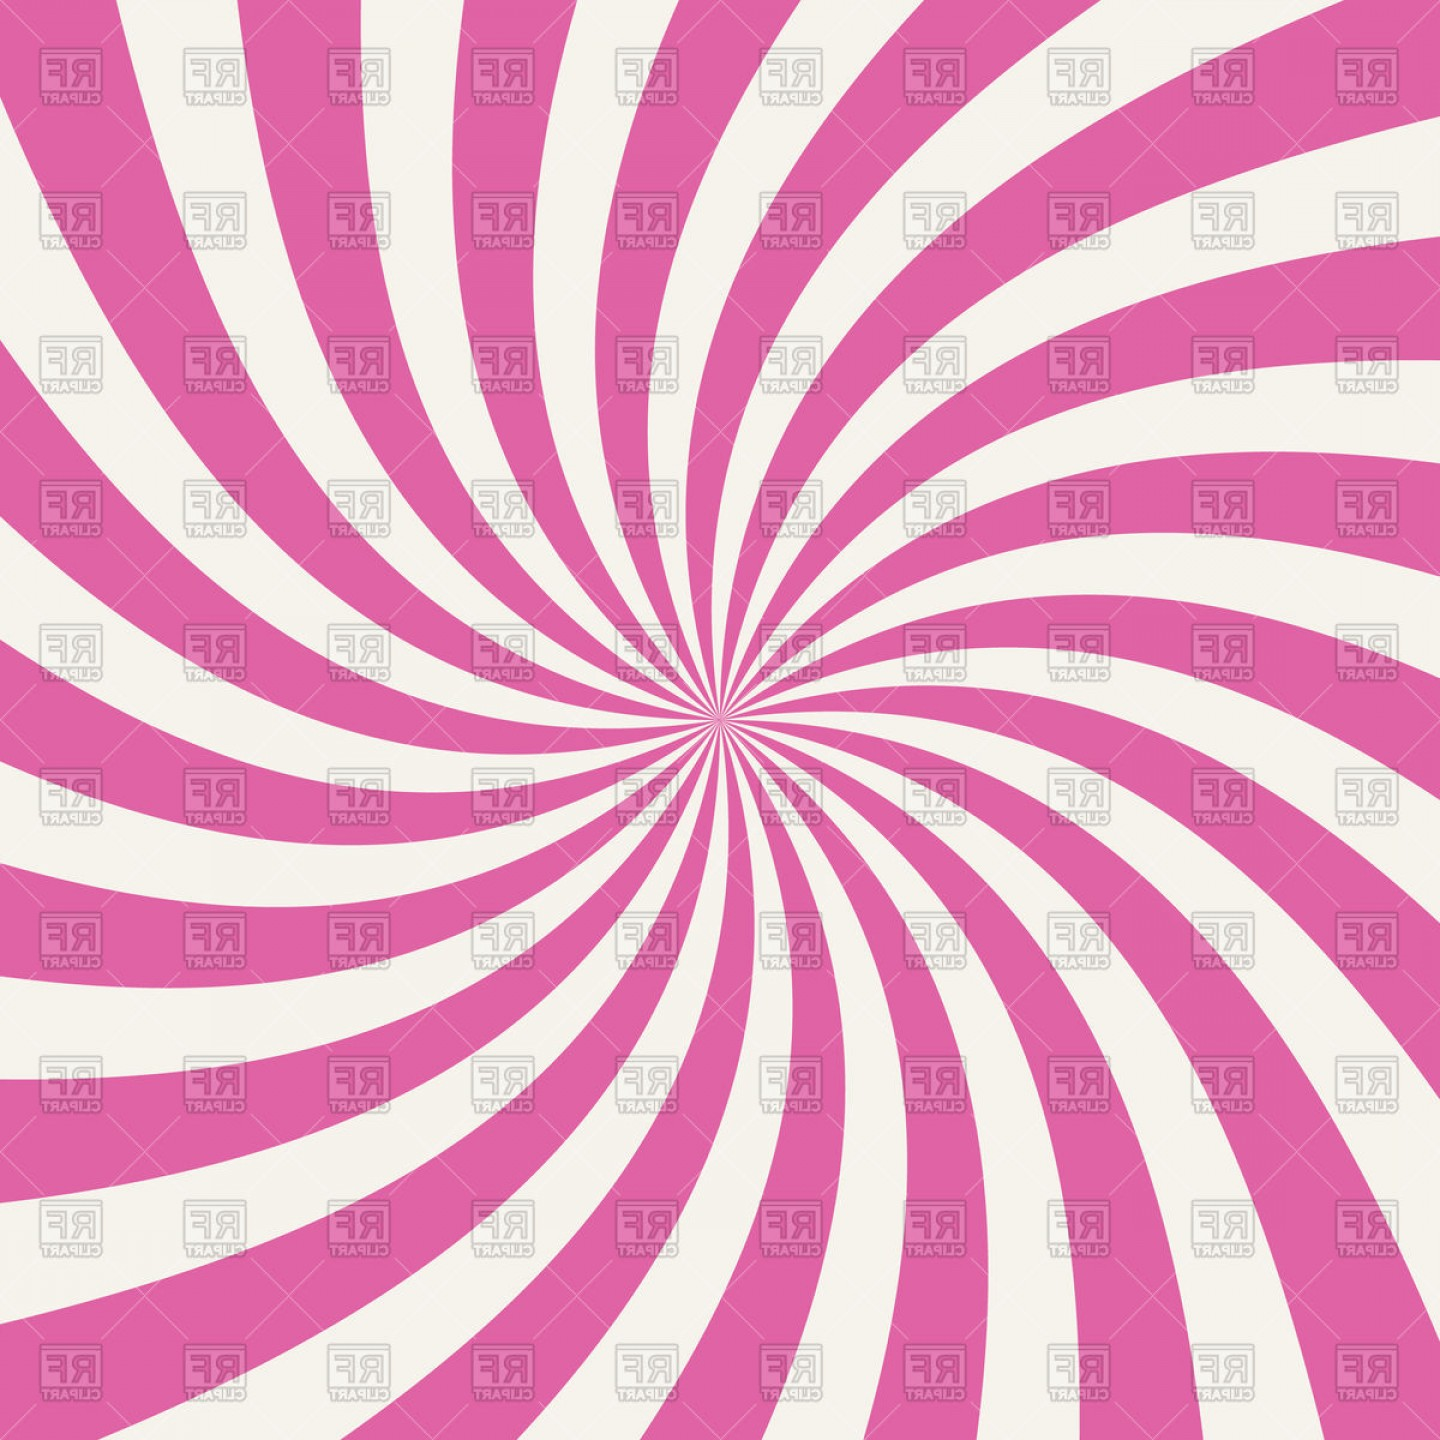 Radial lines clipart banner library download Pink Swirling Radial Pattern Background Vector Clipart ... banner library download